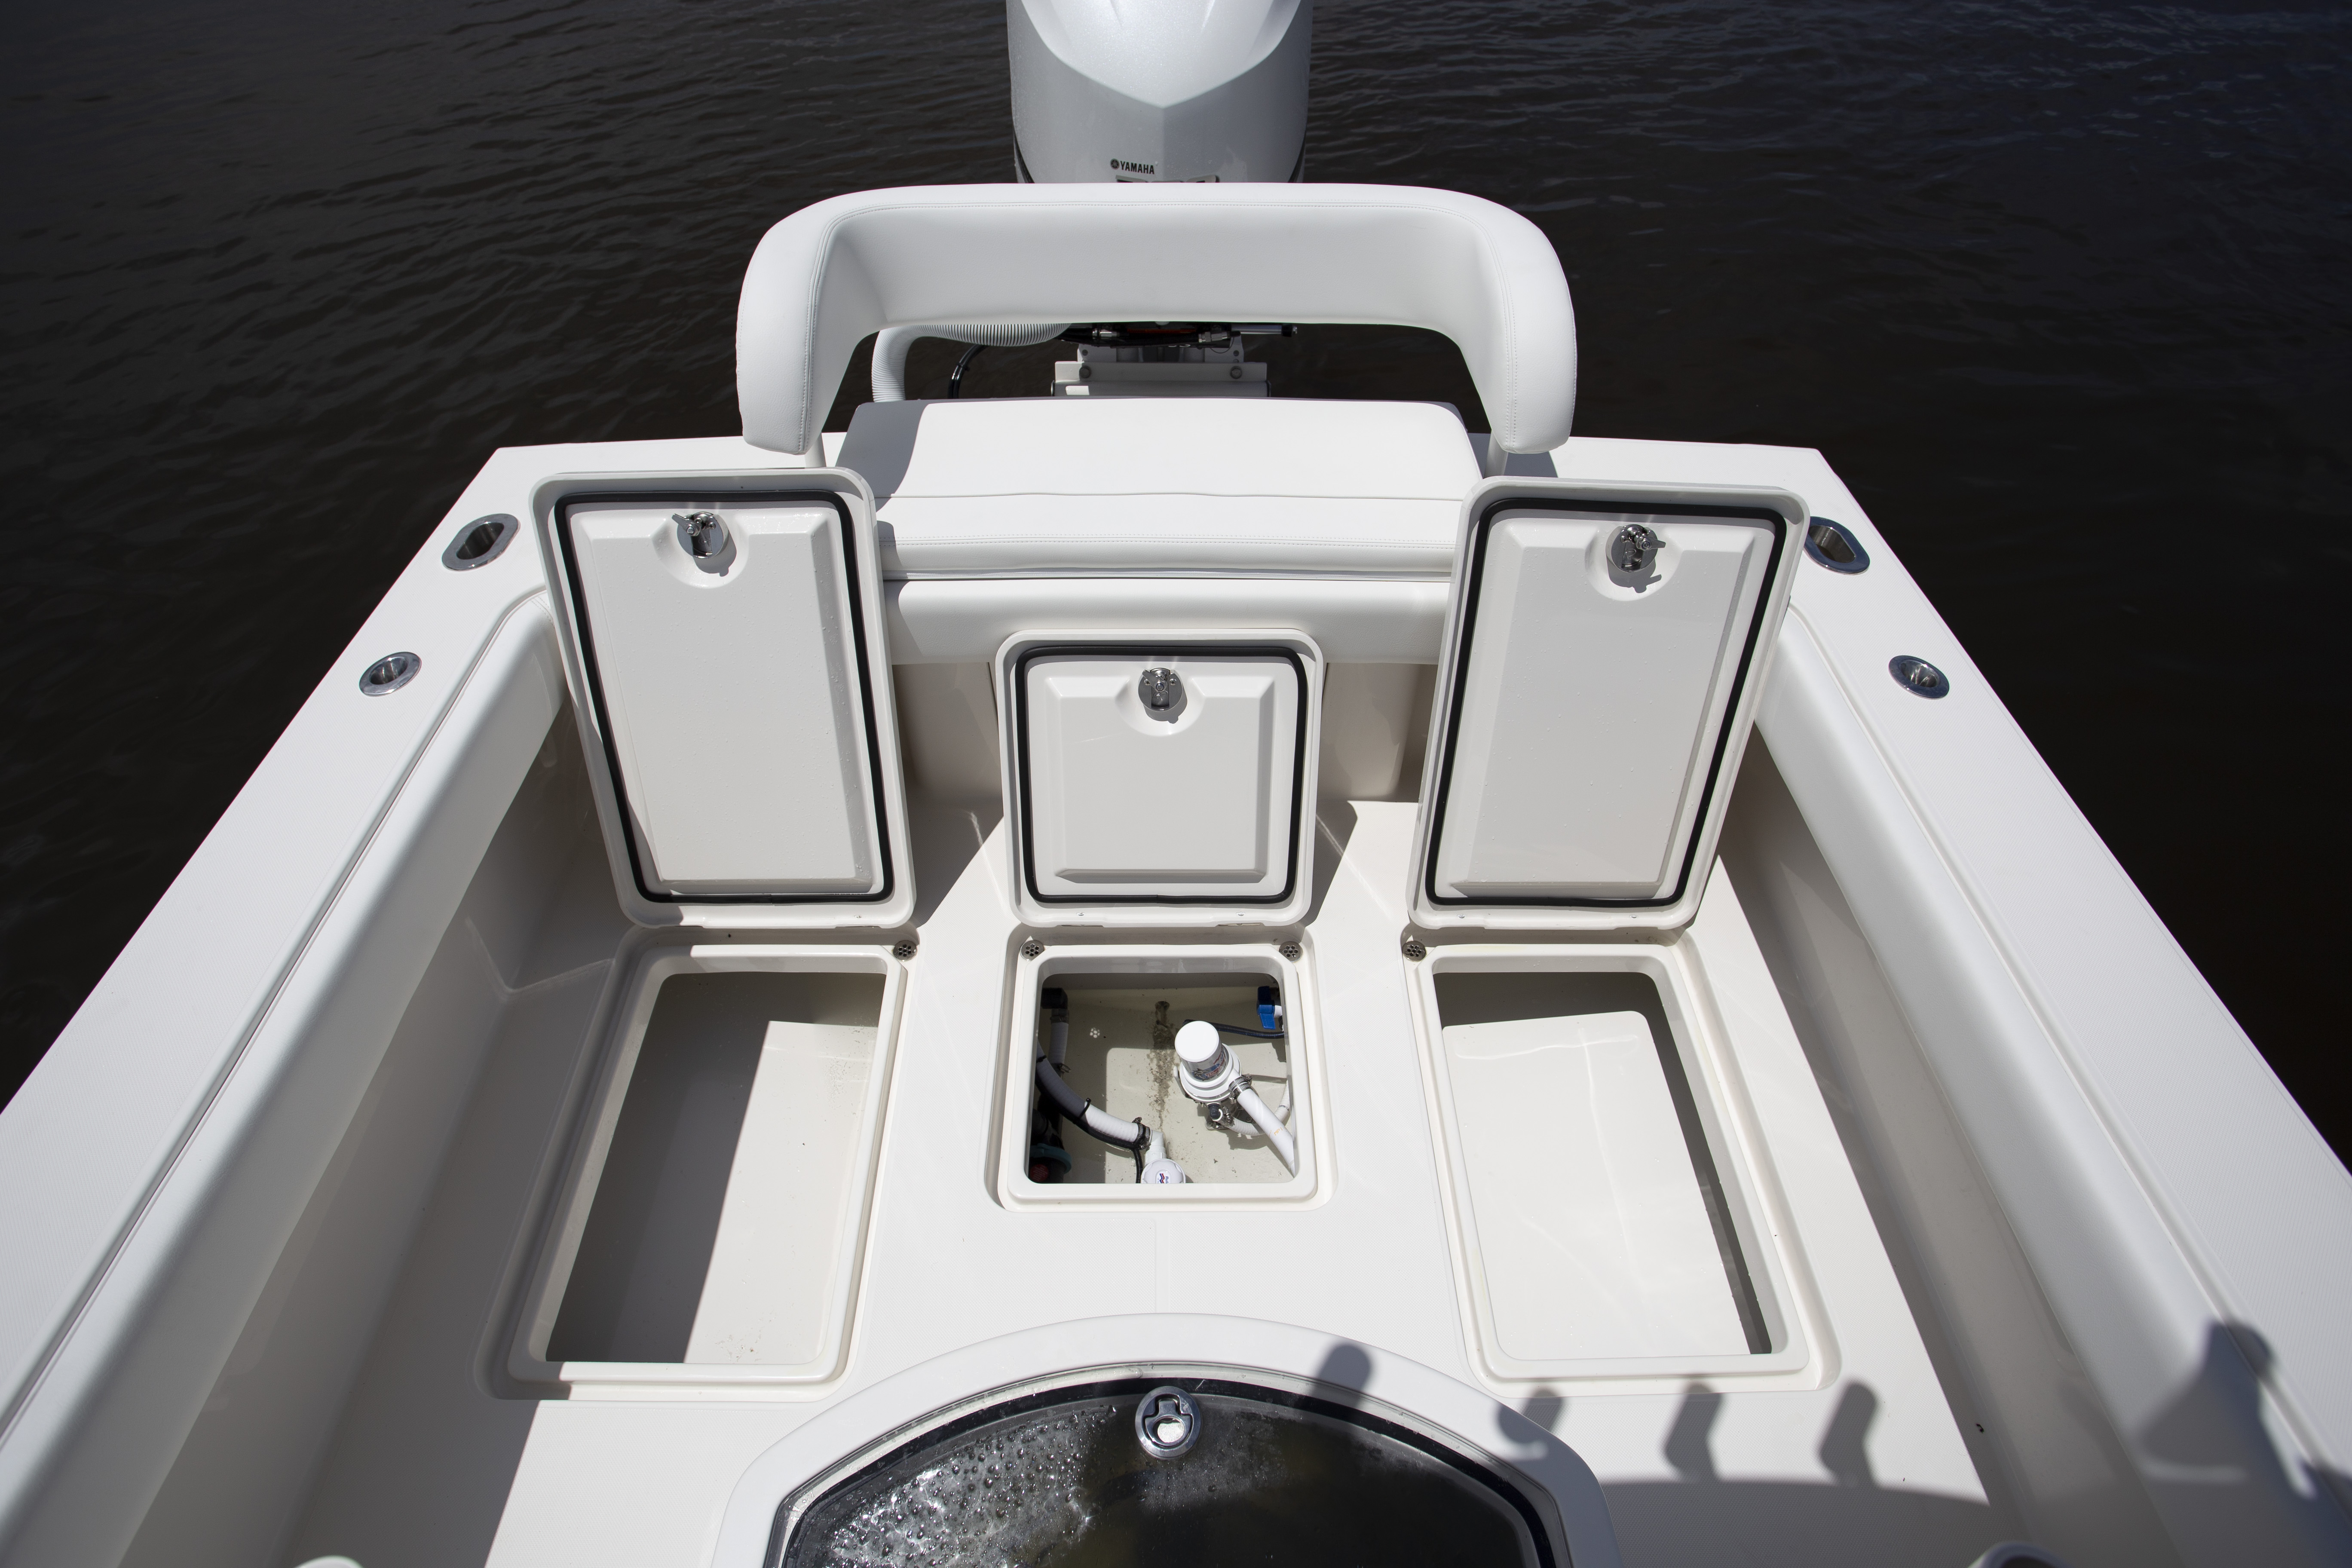 Jupiter 25 Bay Aft Storage Review